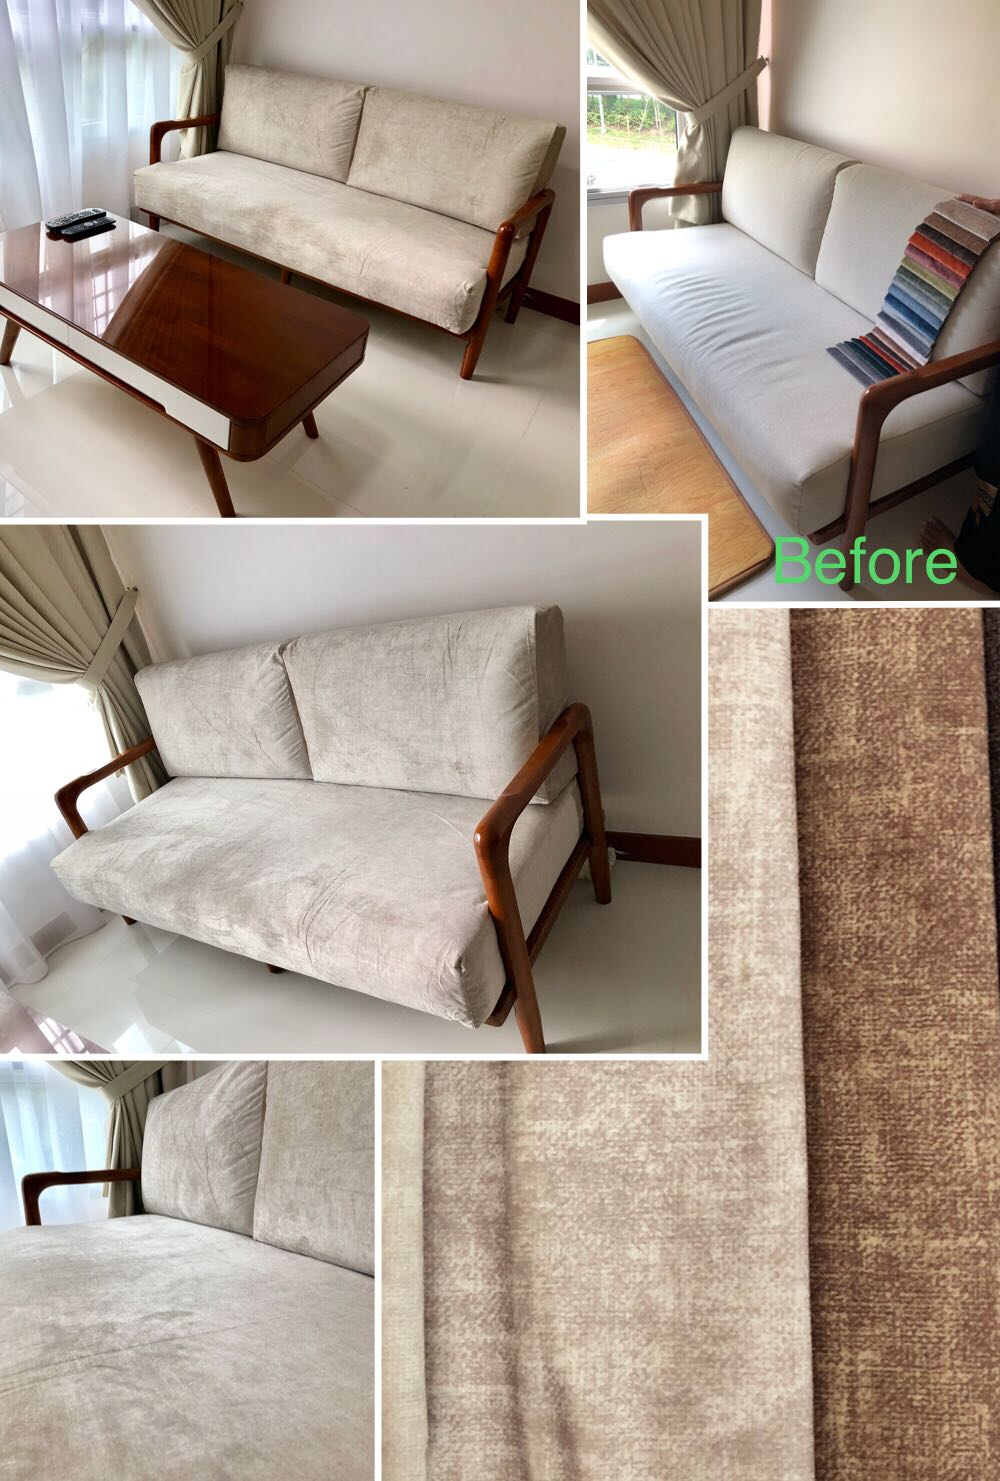 sofa seat cover singapore amazon sectionals custom made cushion covers 98167256 furniture sofas on carousell share this listing